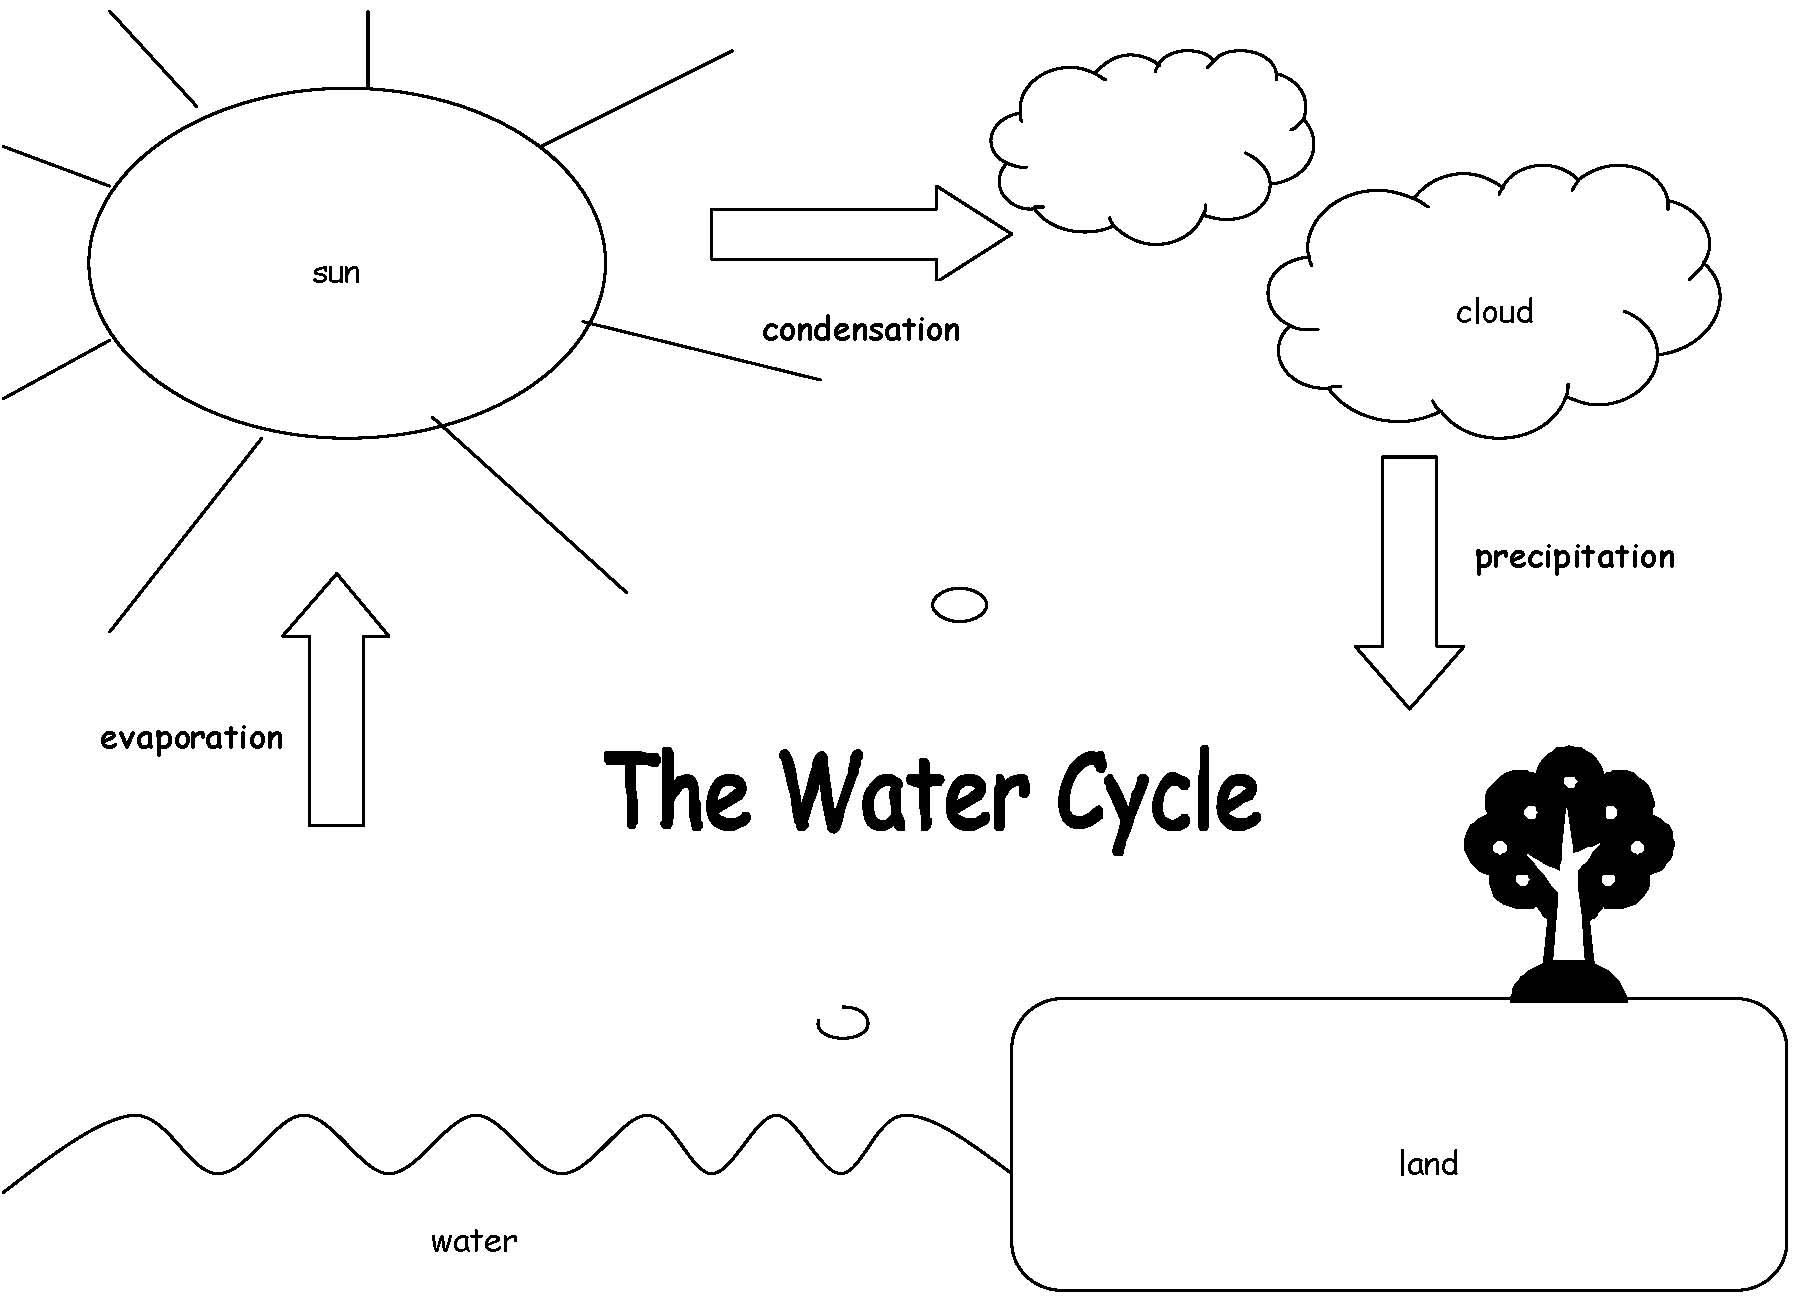 Printables Water Cycle Worksheets 1000 images about water cycle on pinterest weather and climate activities science worksheets